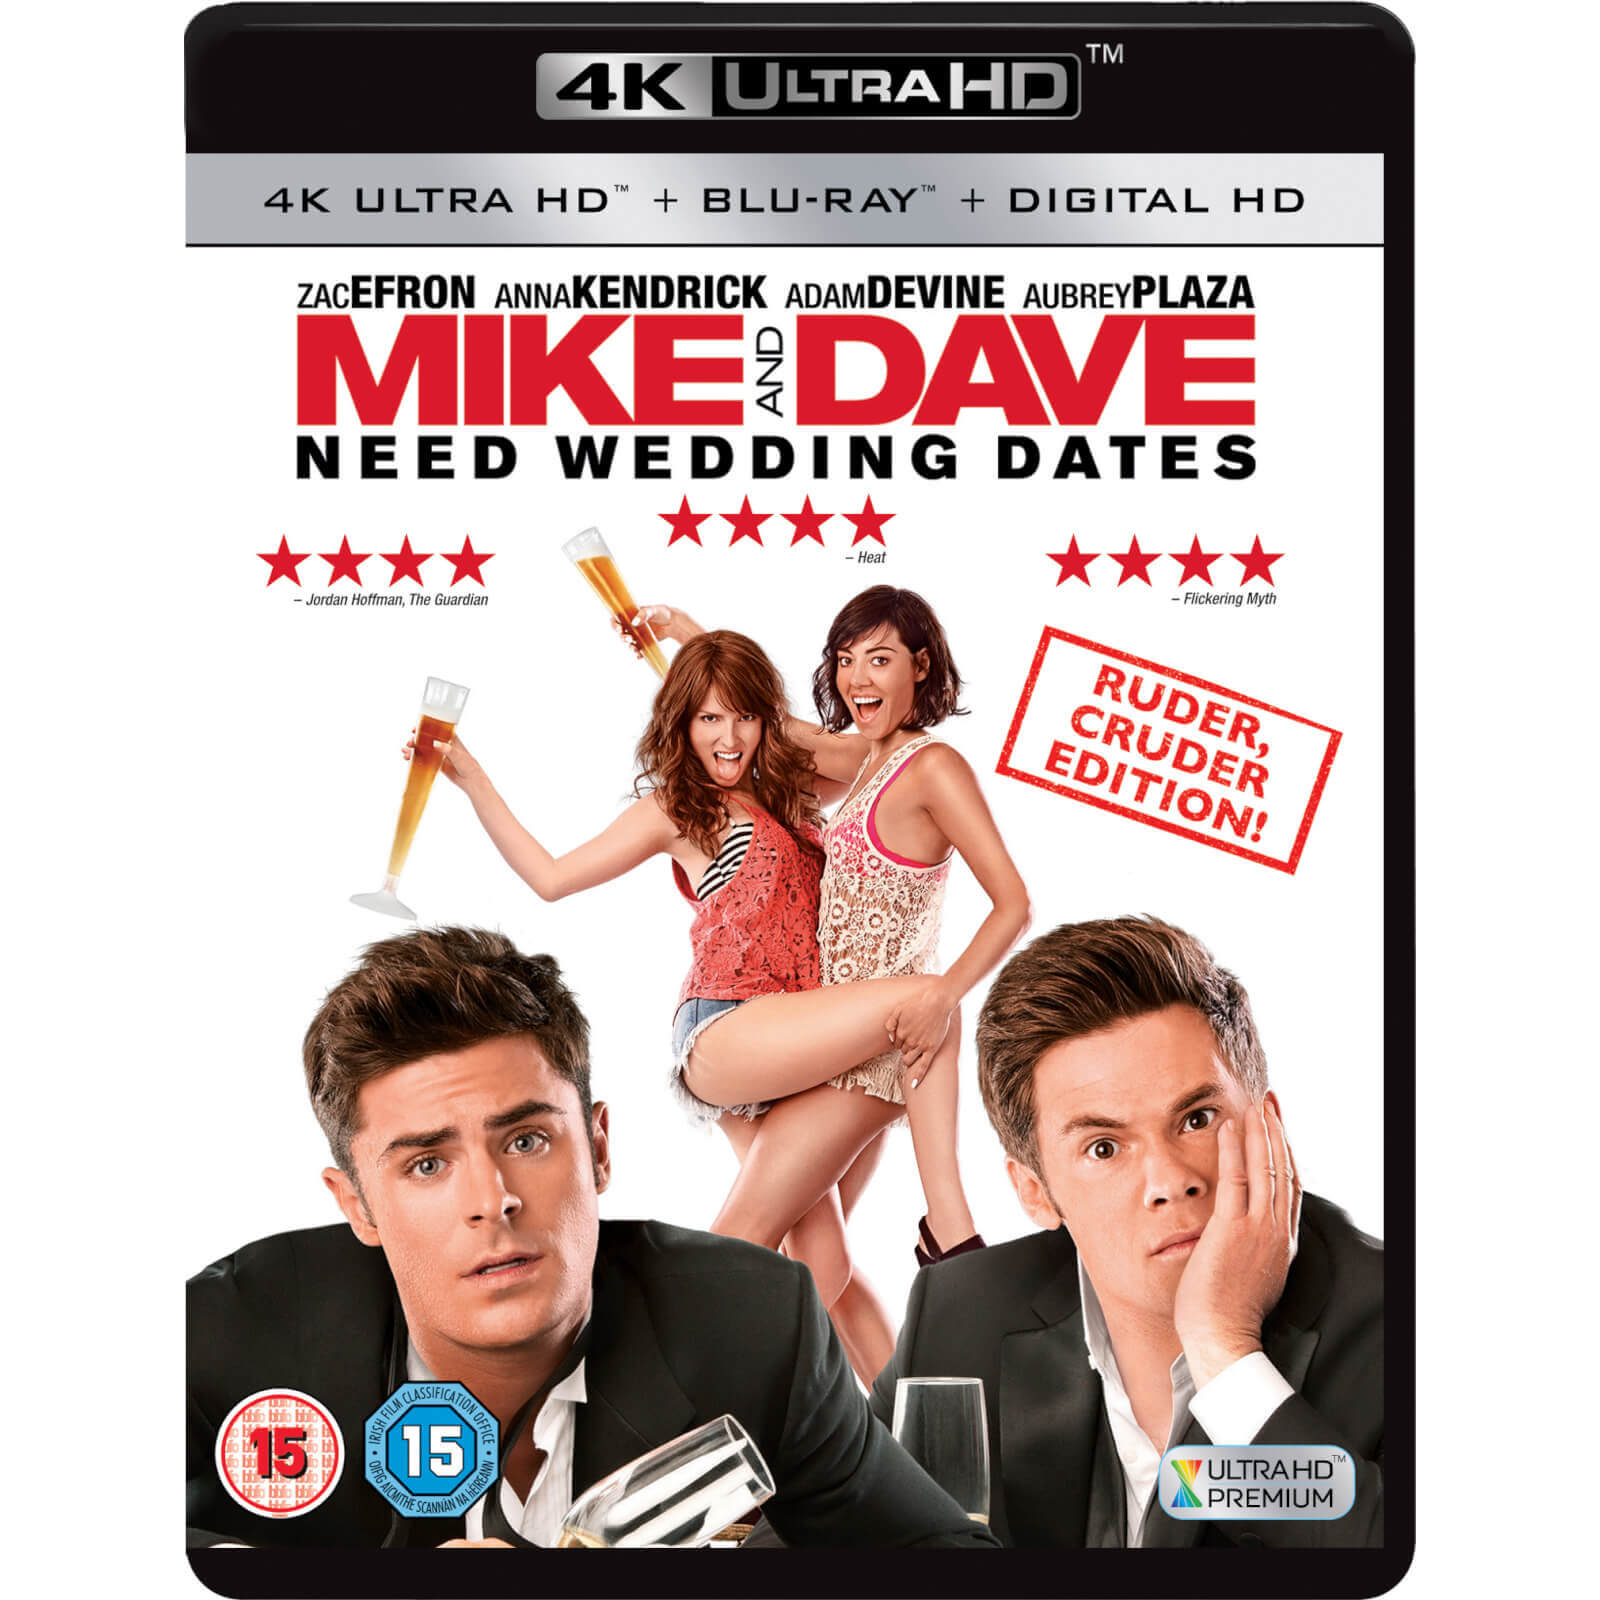 Mike and Dave Need Wedding Dates - 4K Ultra HD